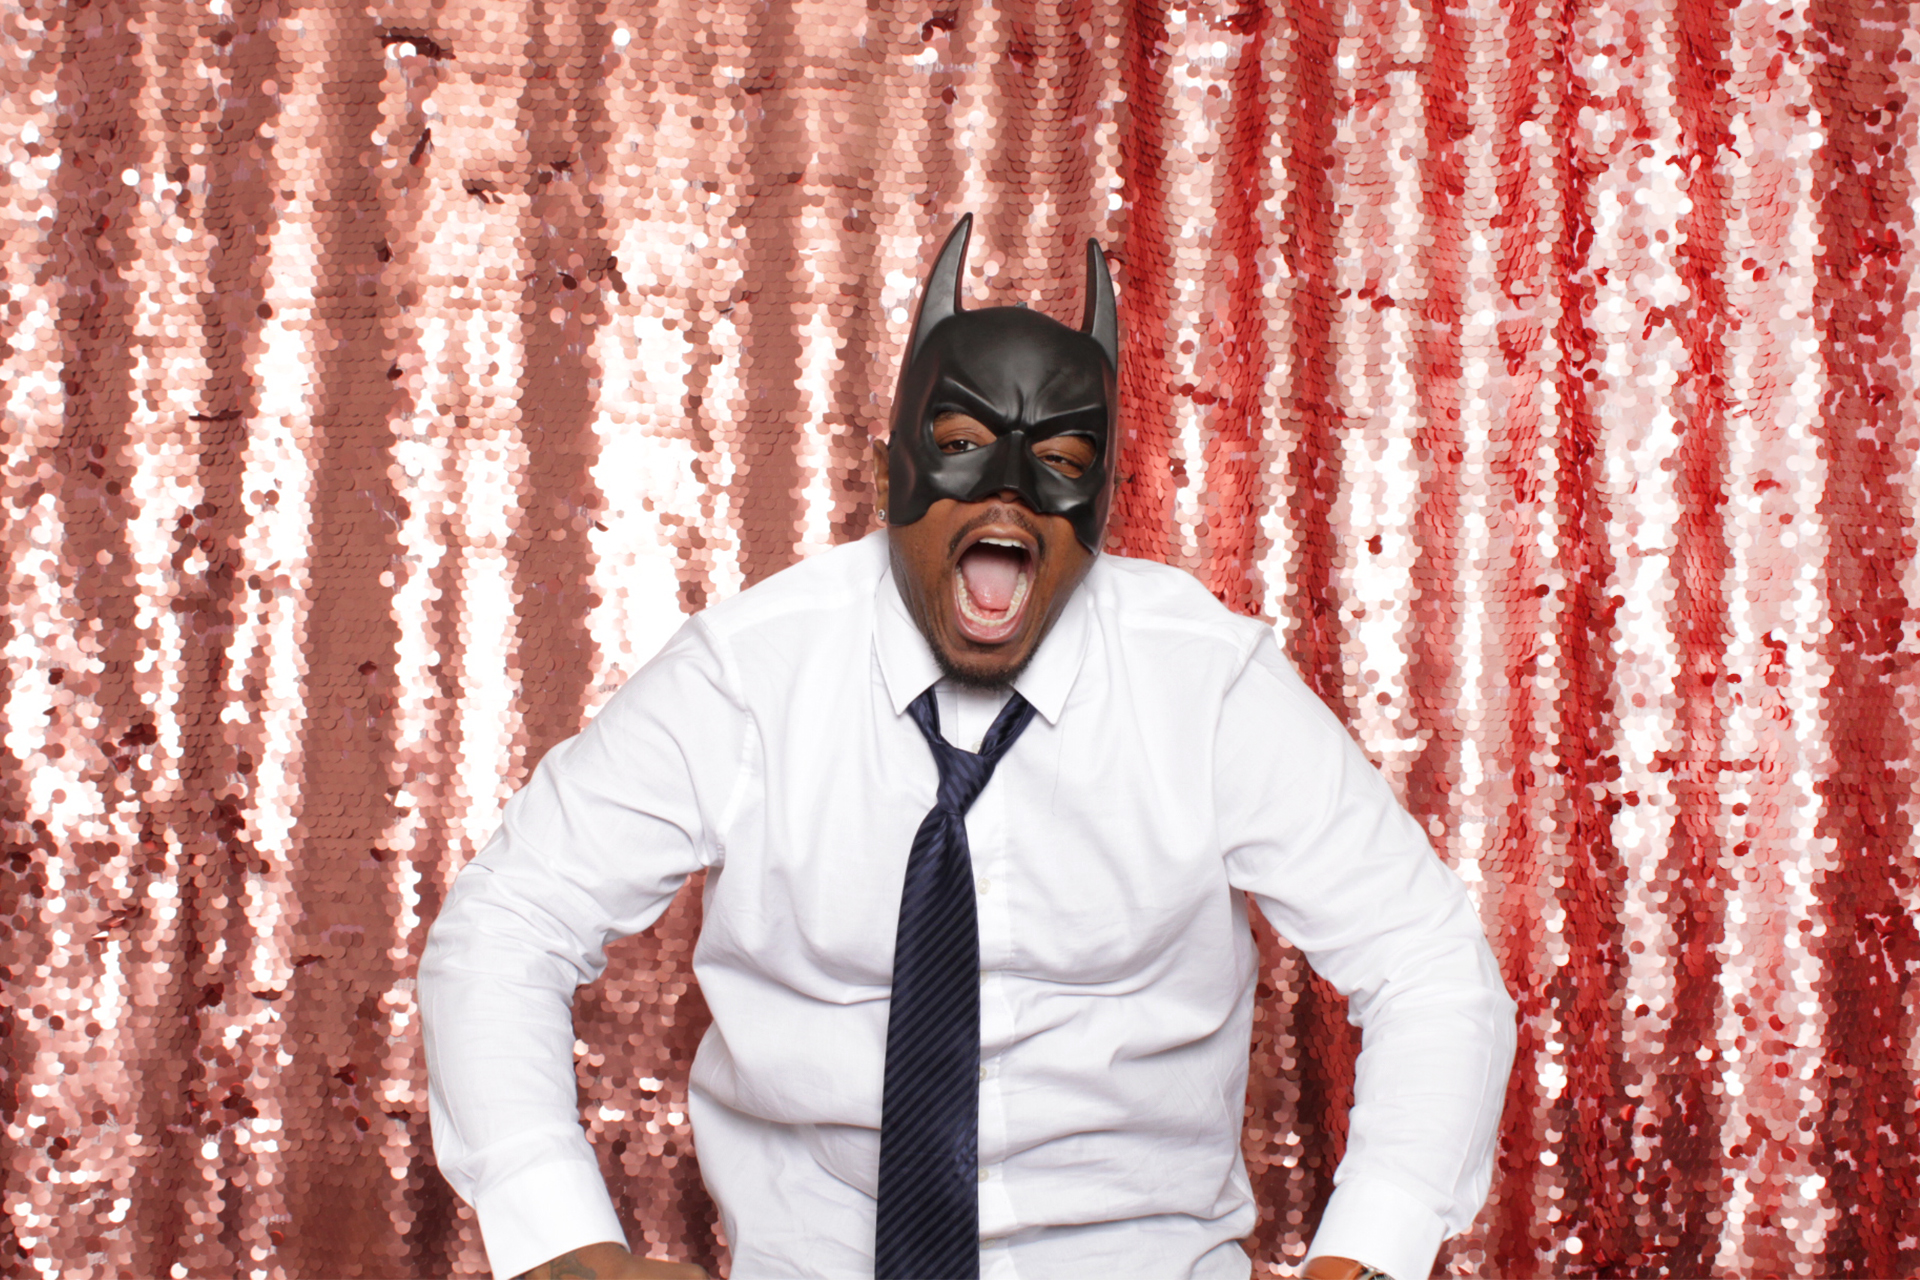 open air photo booth rental company catering Philadelphia, Delaware and New Jersey